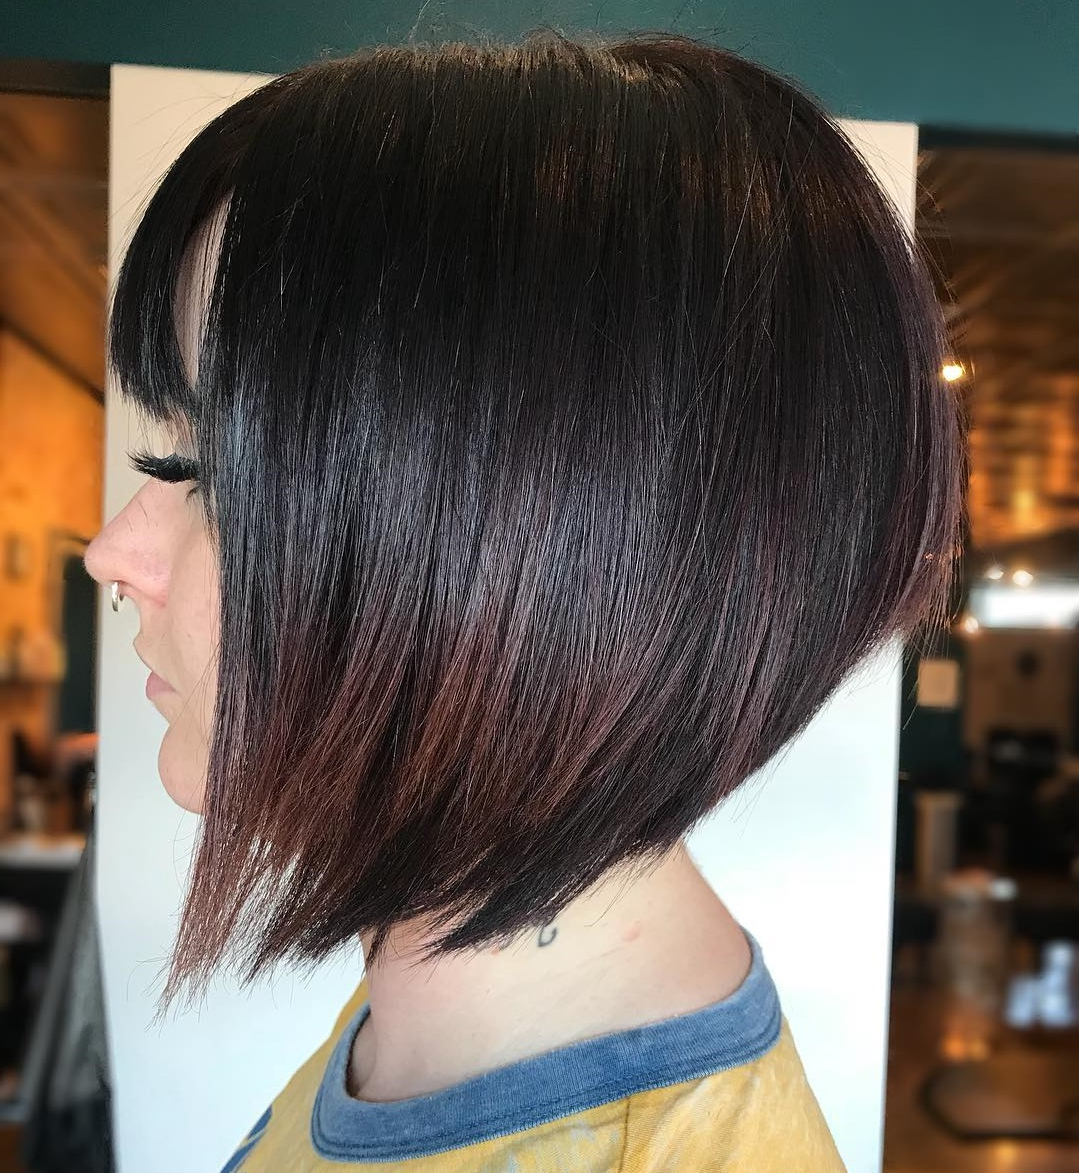 45 Short Hairstyles For Fine Hair To Rock In 2019 Inside Short Sliced Inverted Bob Hairstyles (View 16 of 20)